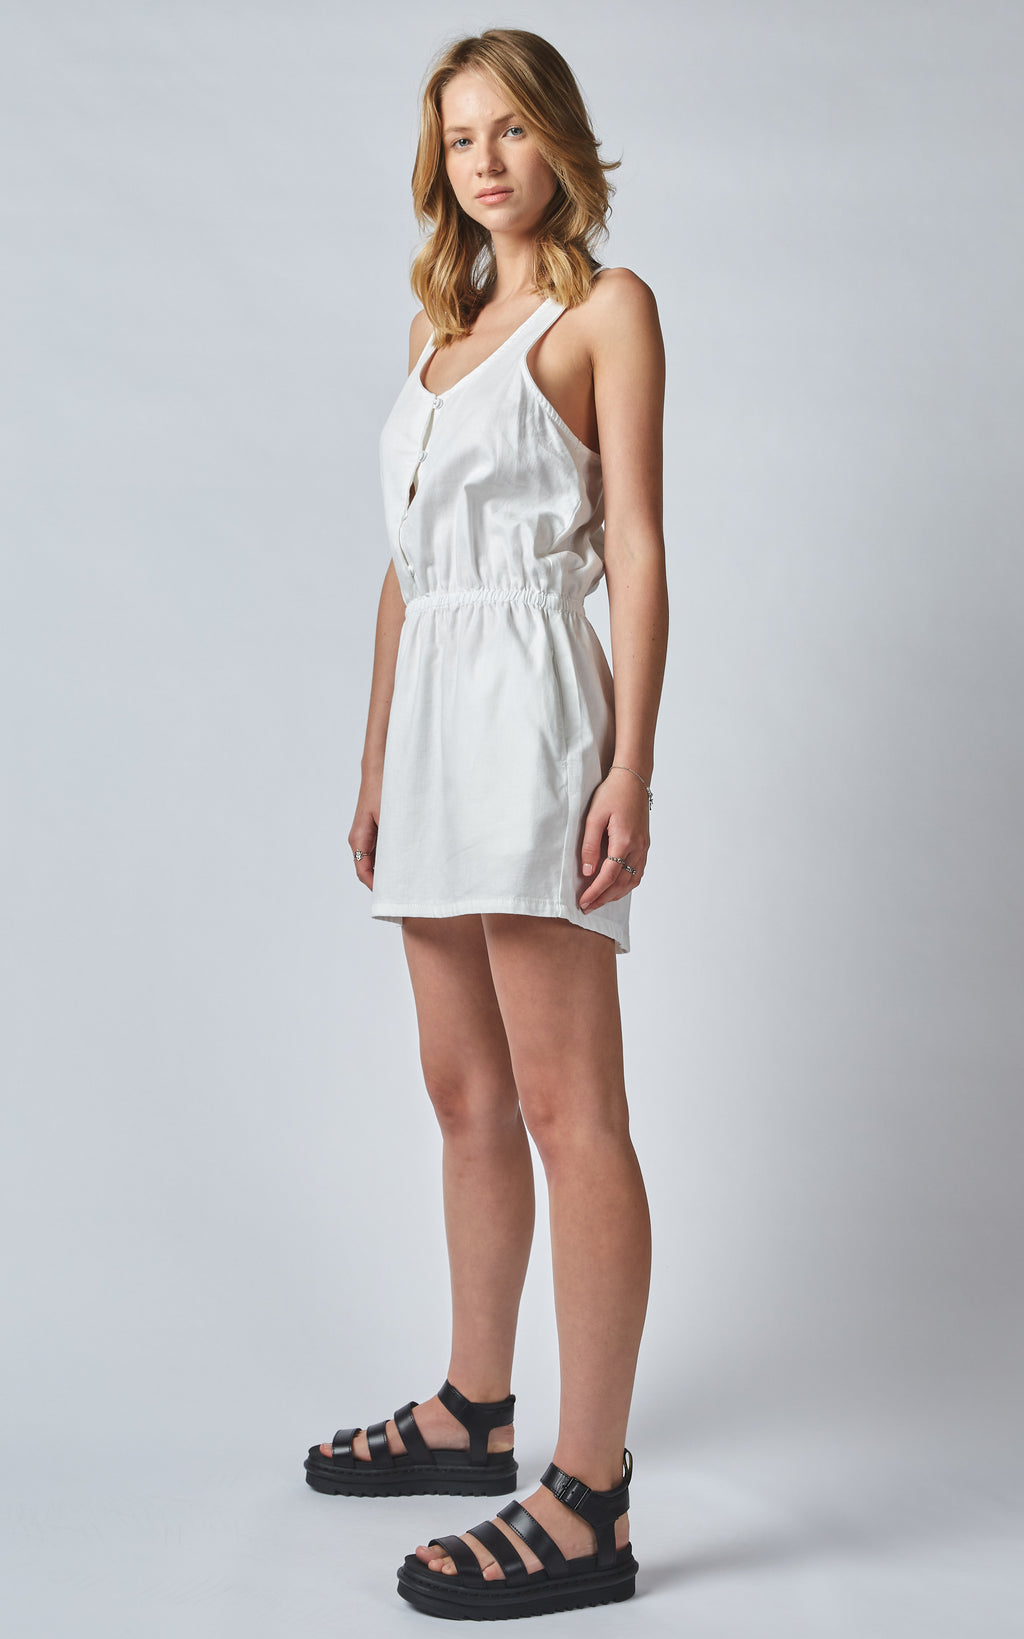 ORIA SPORTY WHITE LINEN DENIM DRESS